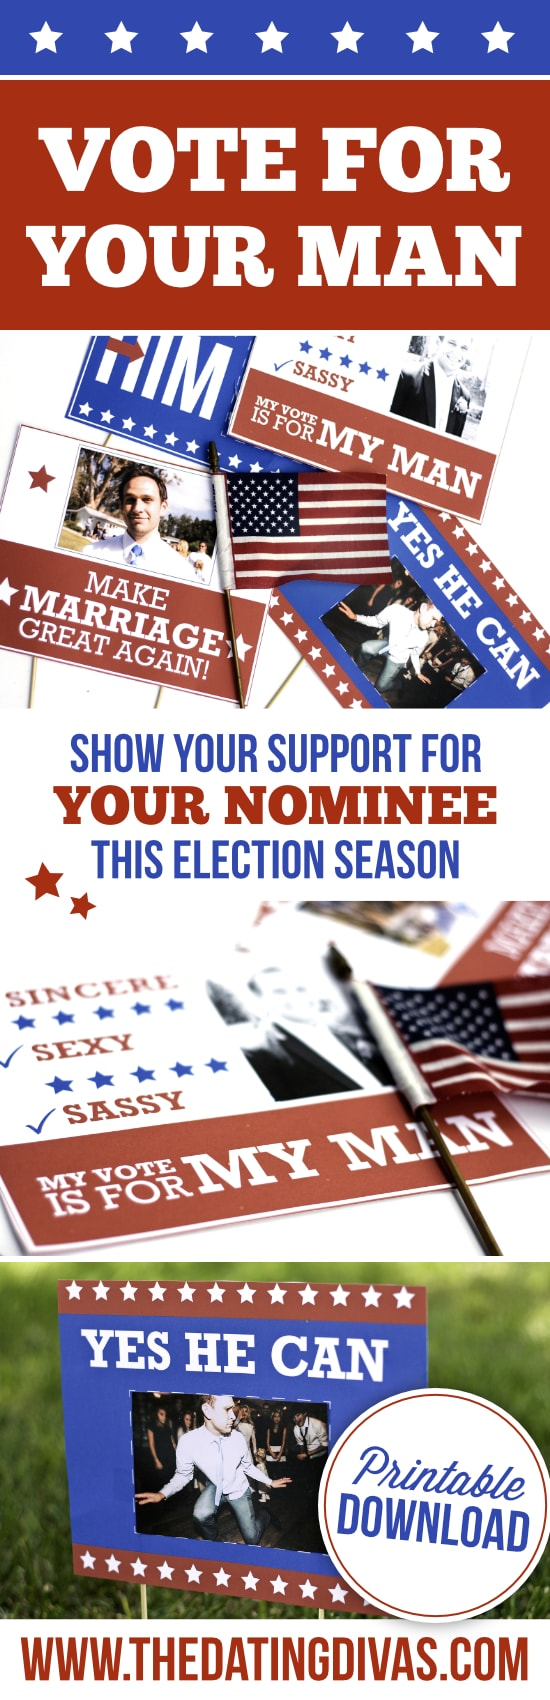 Show your support for your nominee this election season!